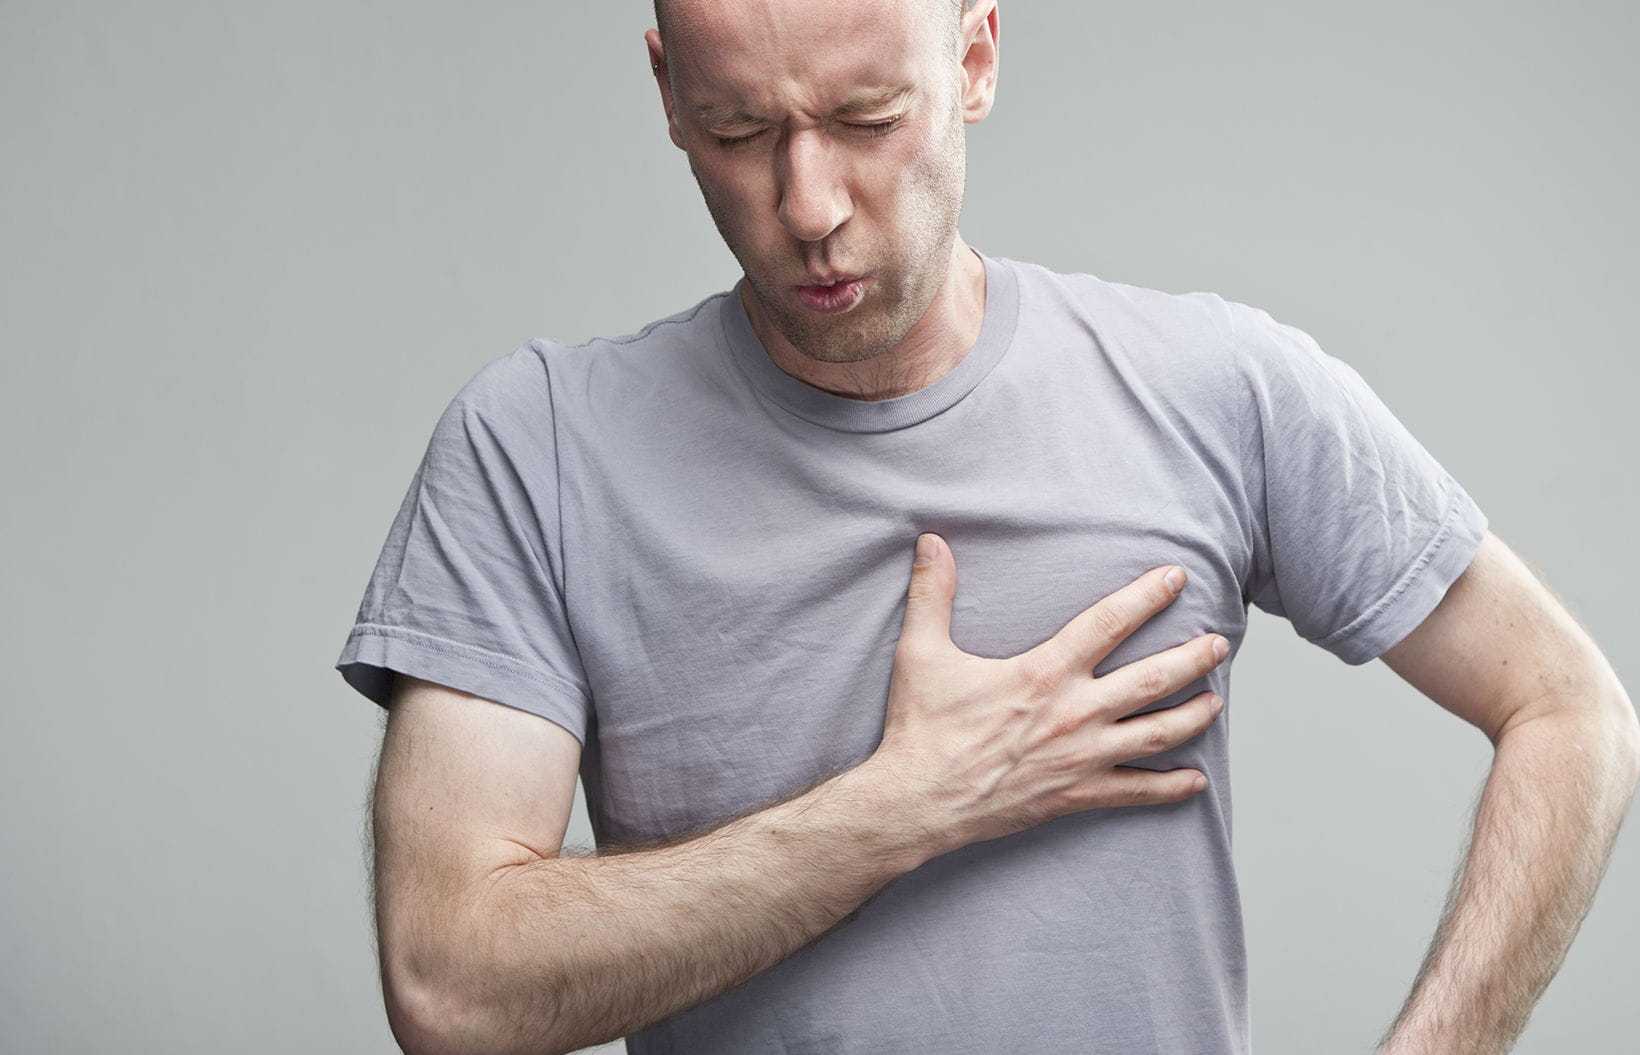 Man clutching his chest in pain